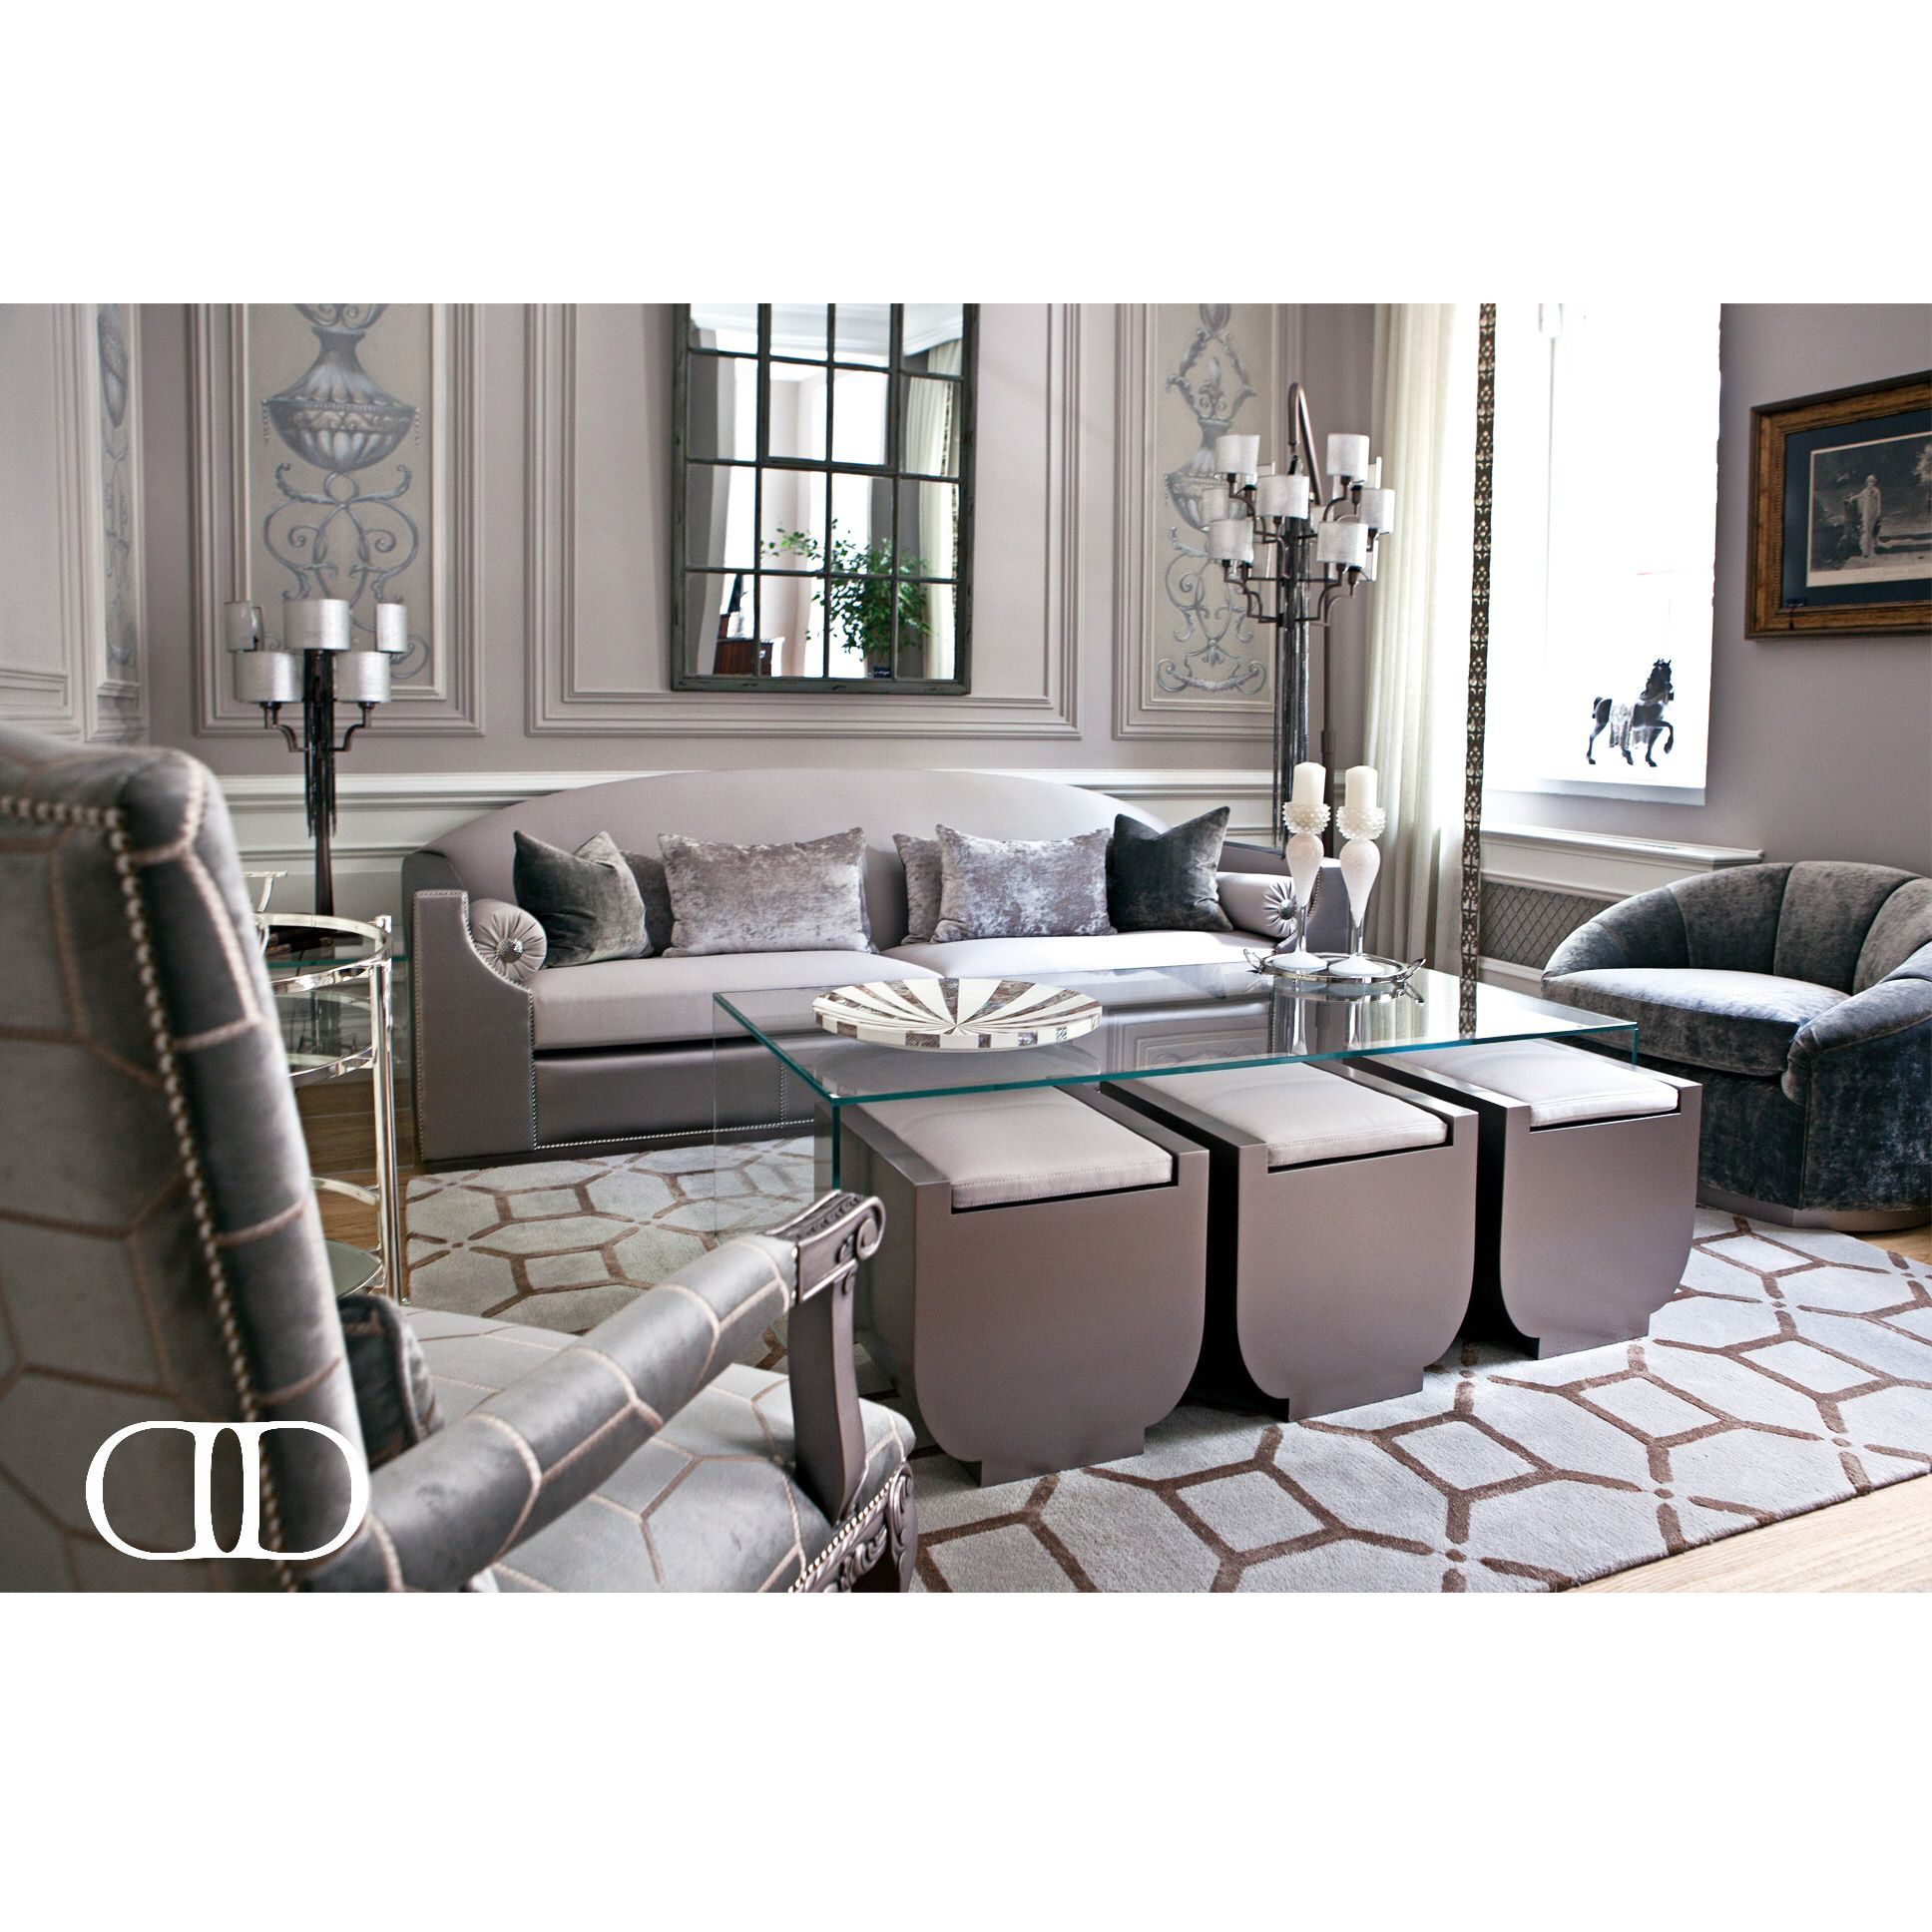 Charming Setting Dorya S Istanbul Sofa Round Chair Jacqueline